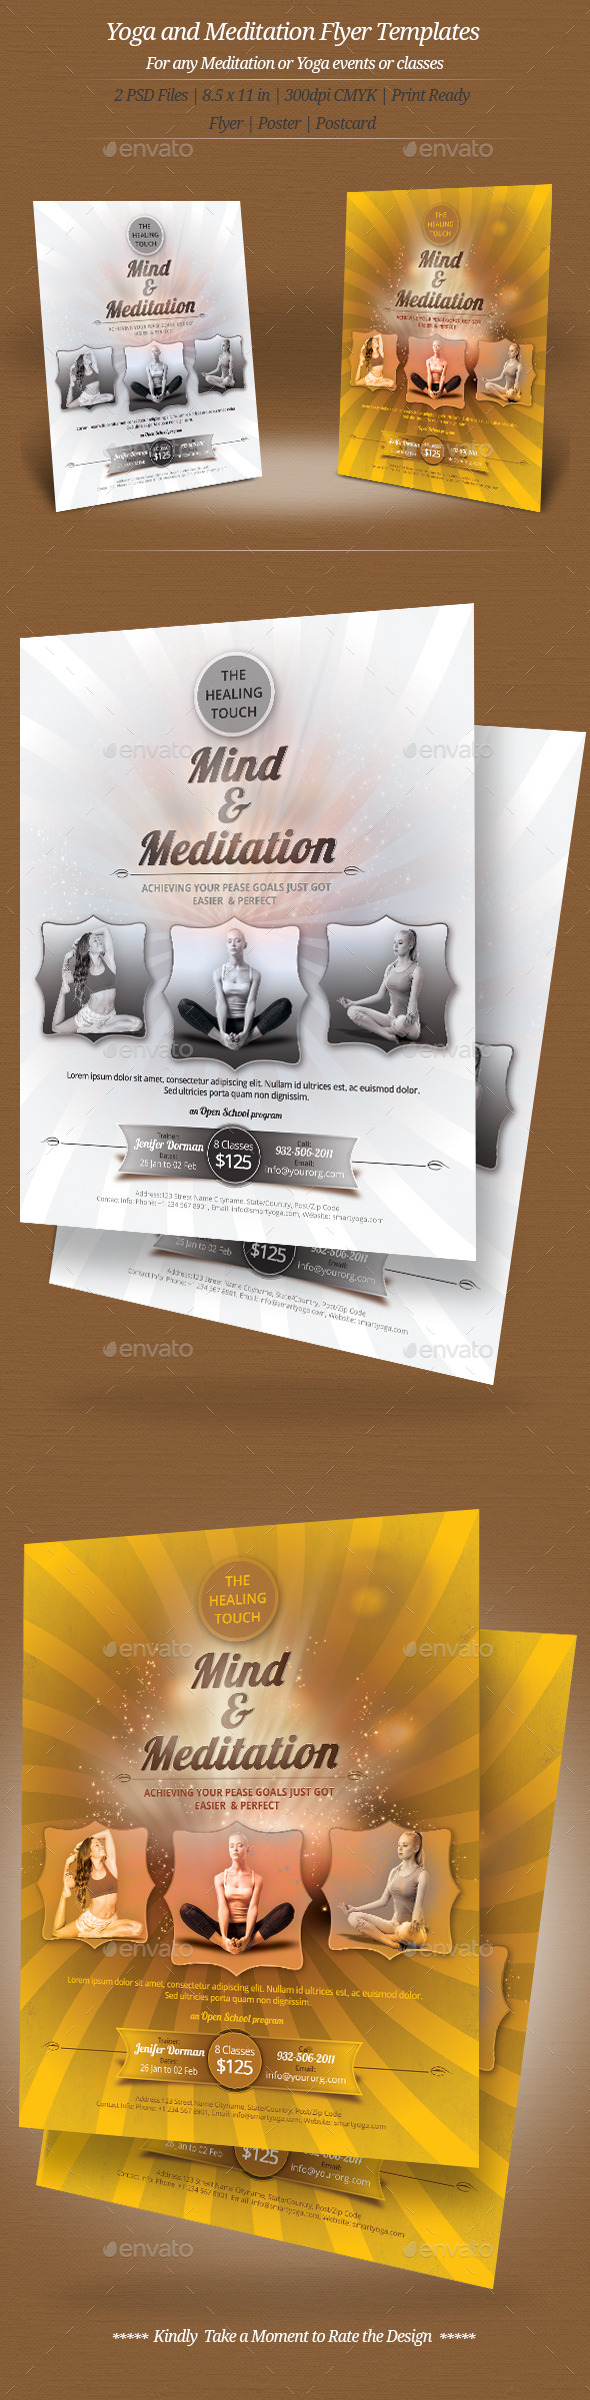 GraphicRiver Yoga and Meditation Flyer Templates 9406335